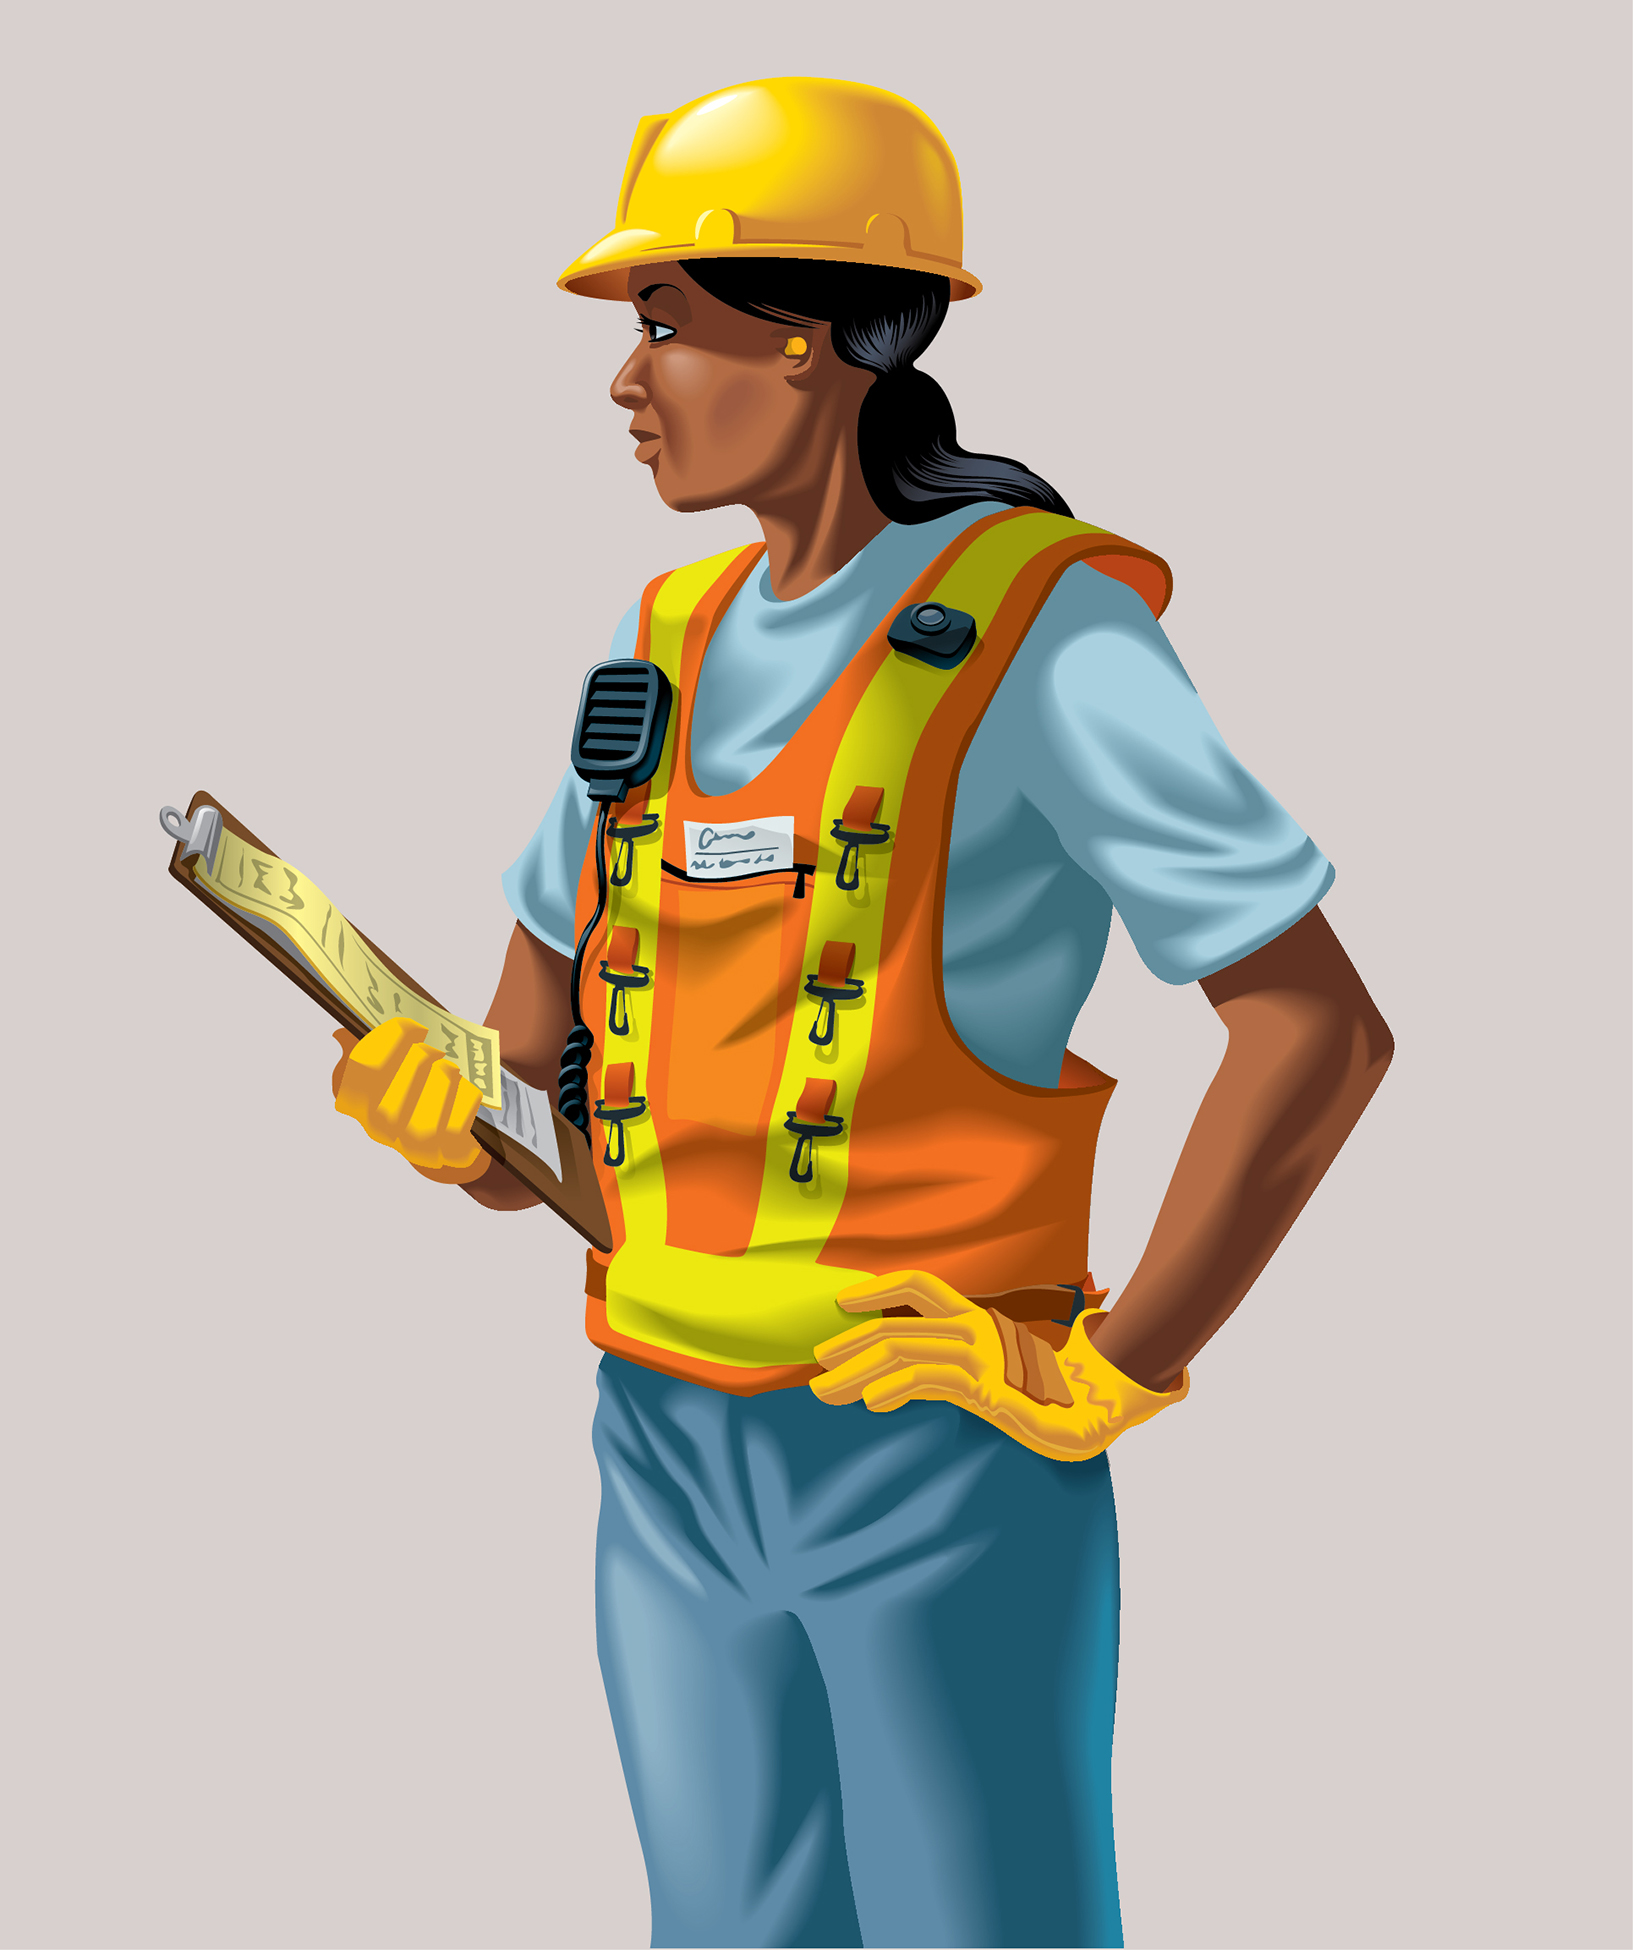 Yard Worker for Union Pacific Mural